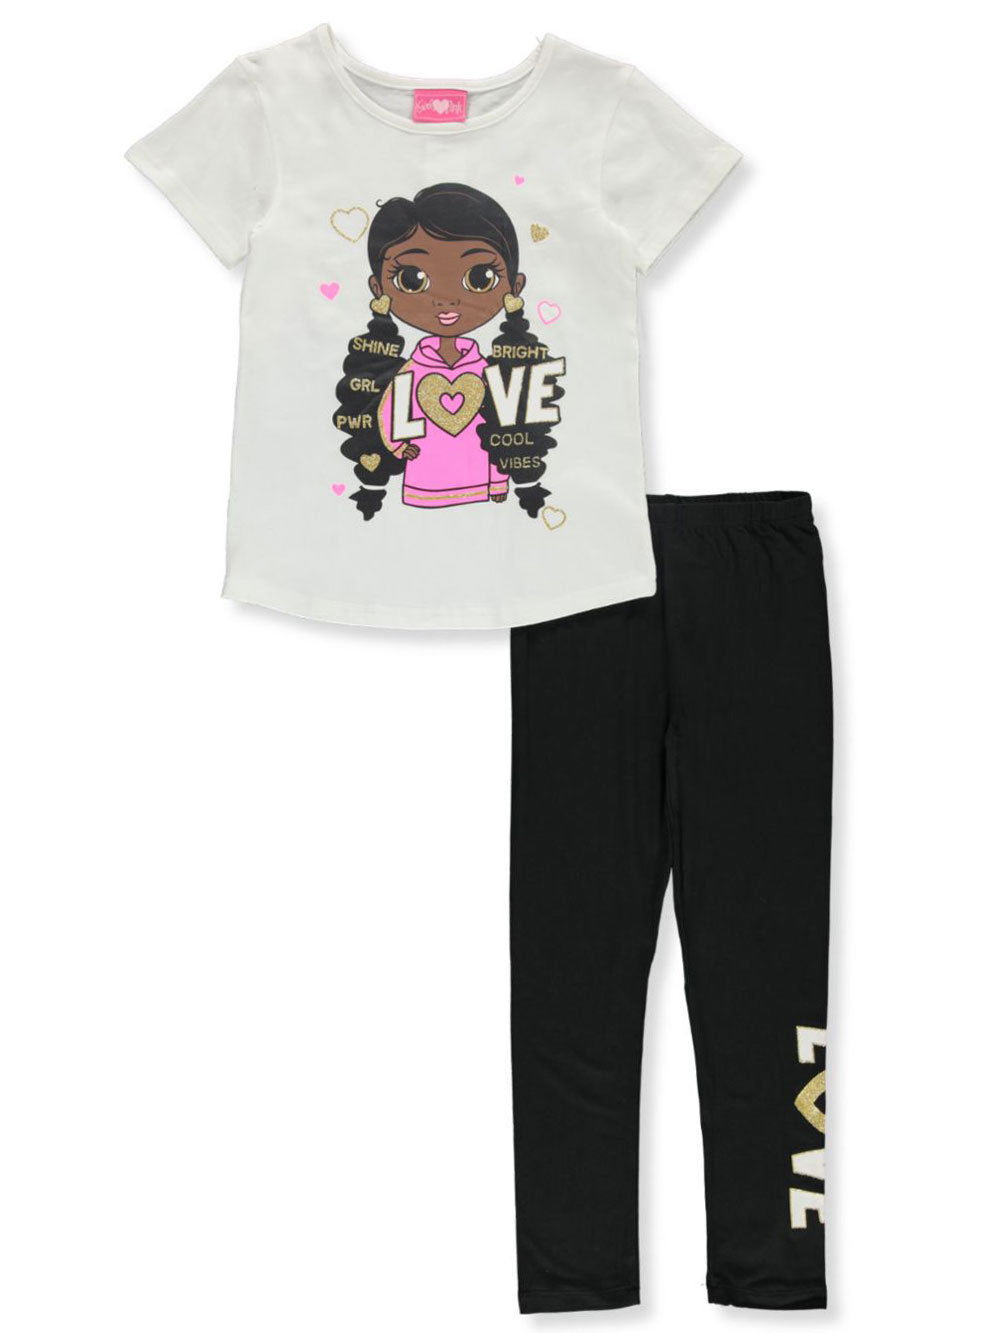 Size 10-12 Pants for Girls